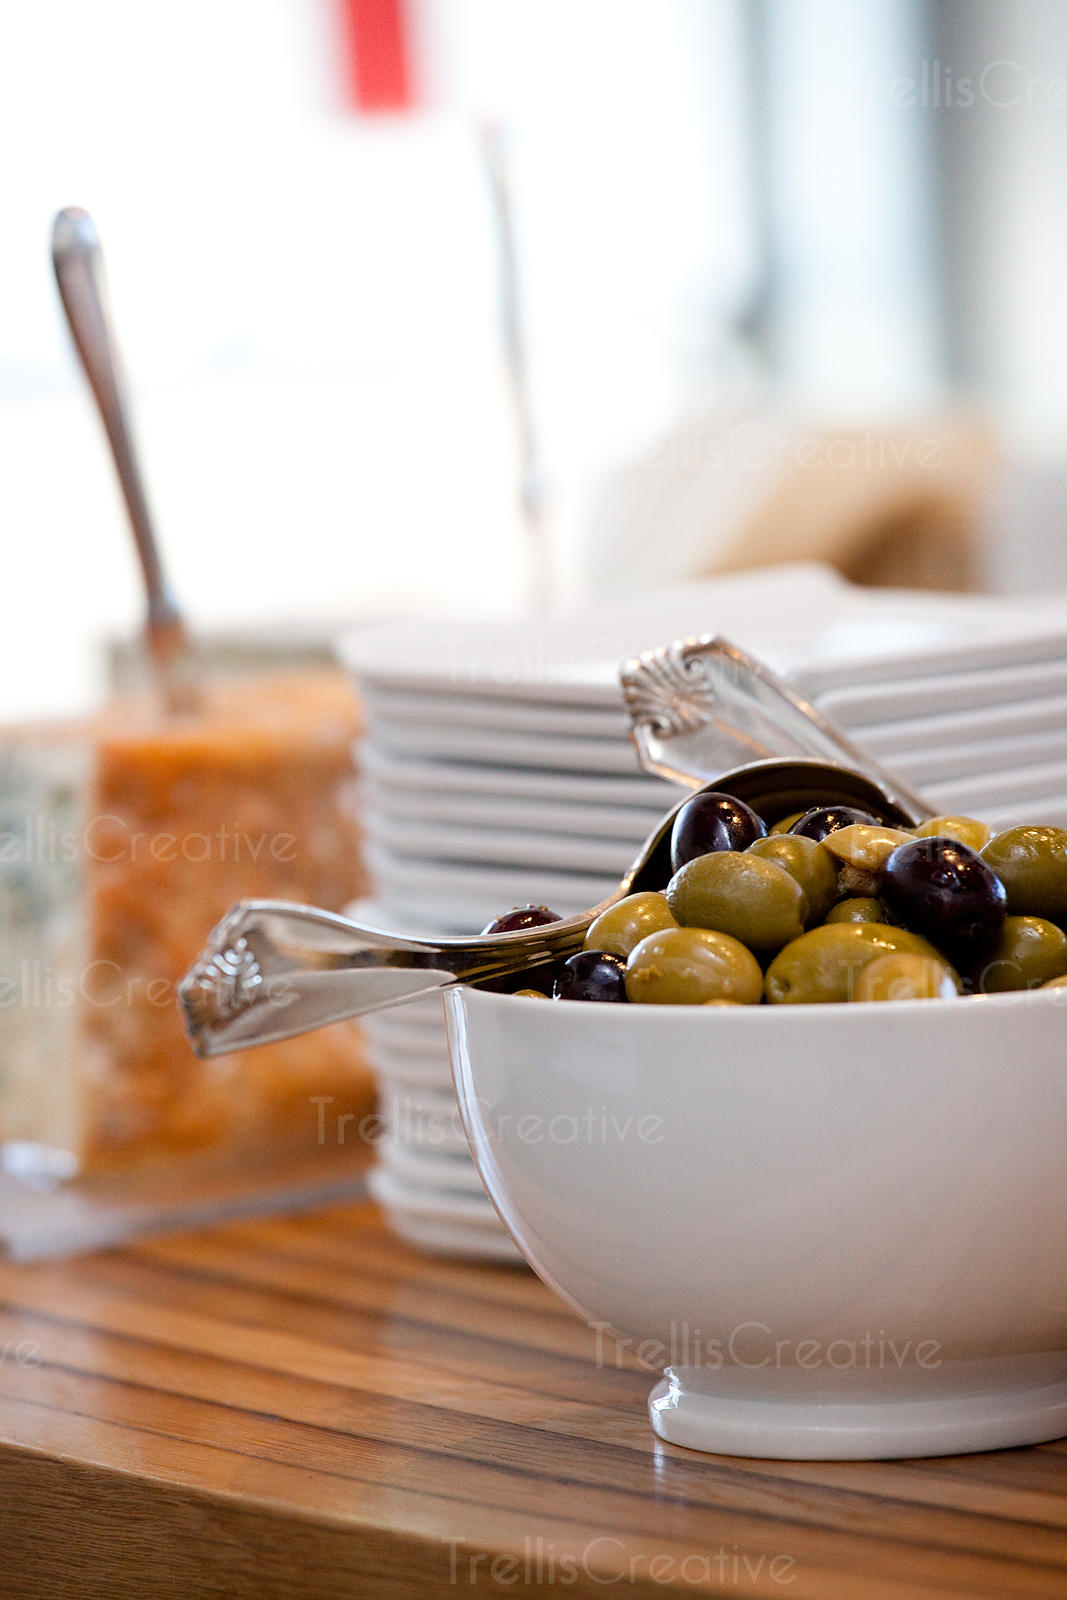 White bowl filled with various marinated olive varieties